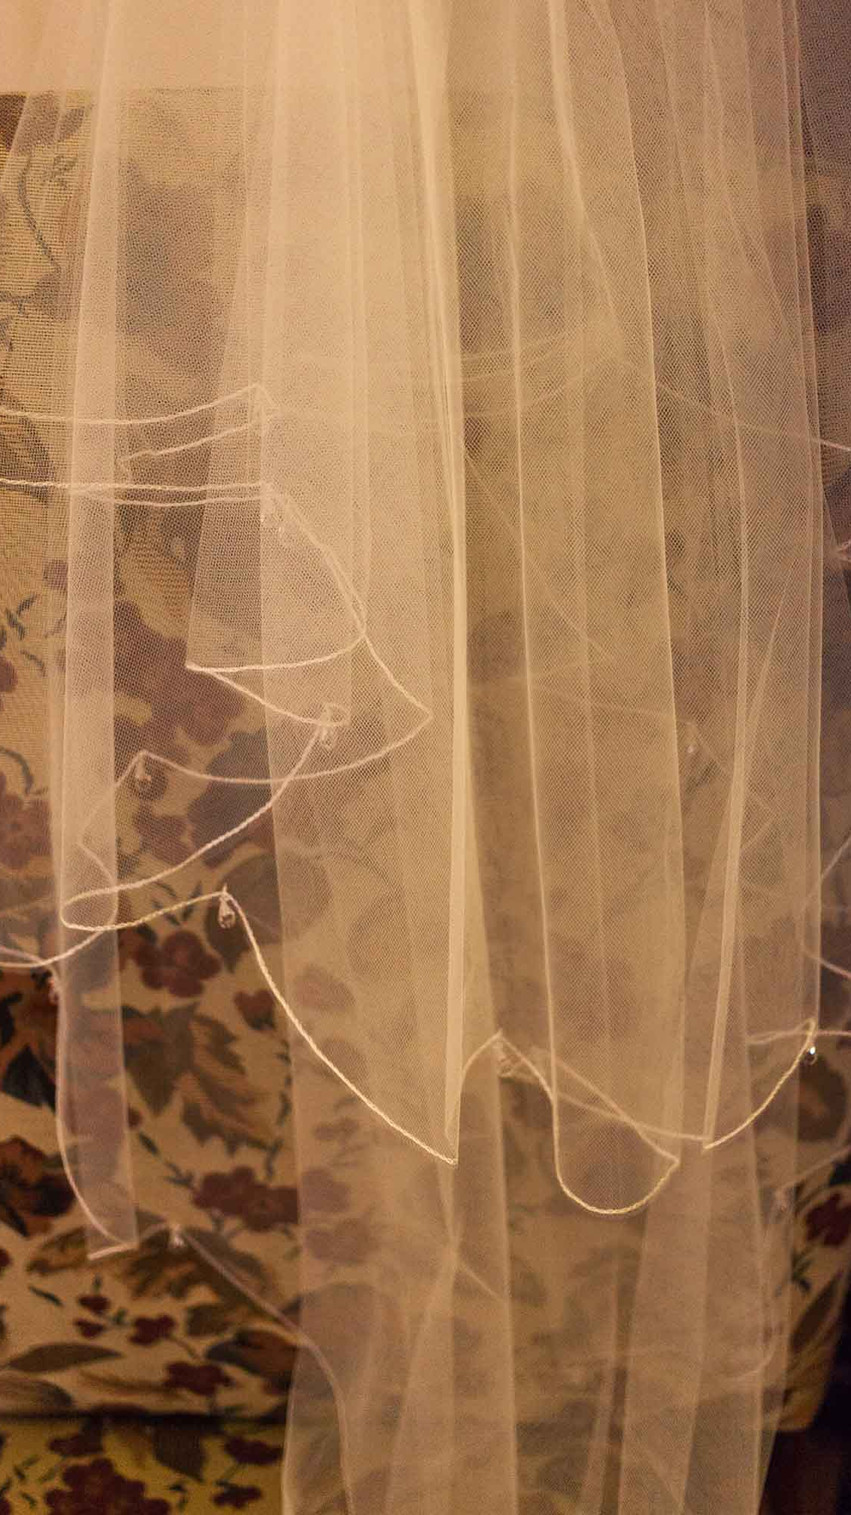 lace wedding dress hanging on a door